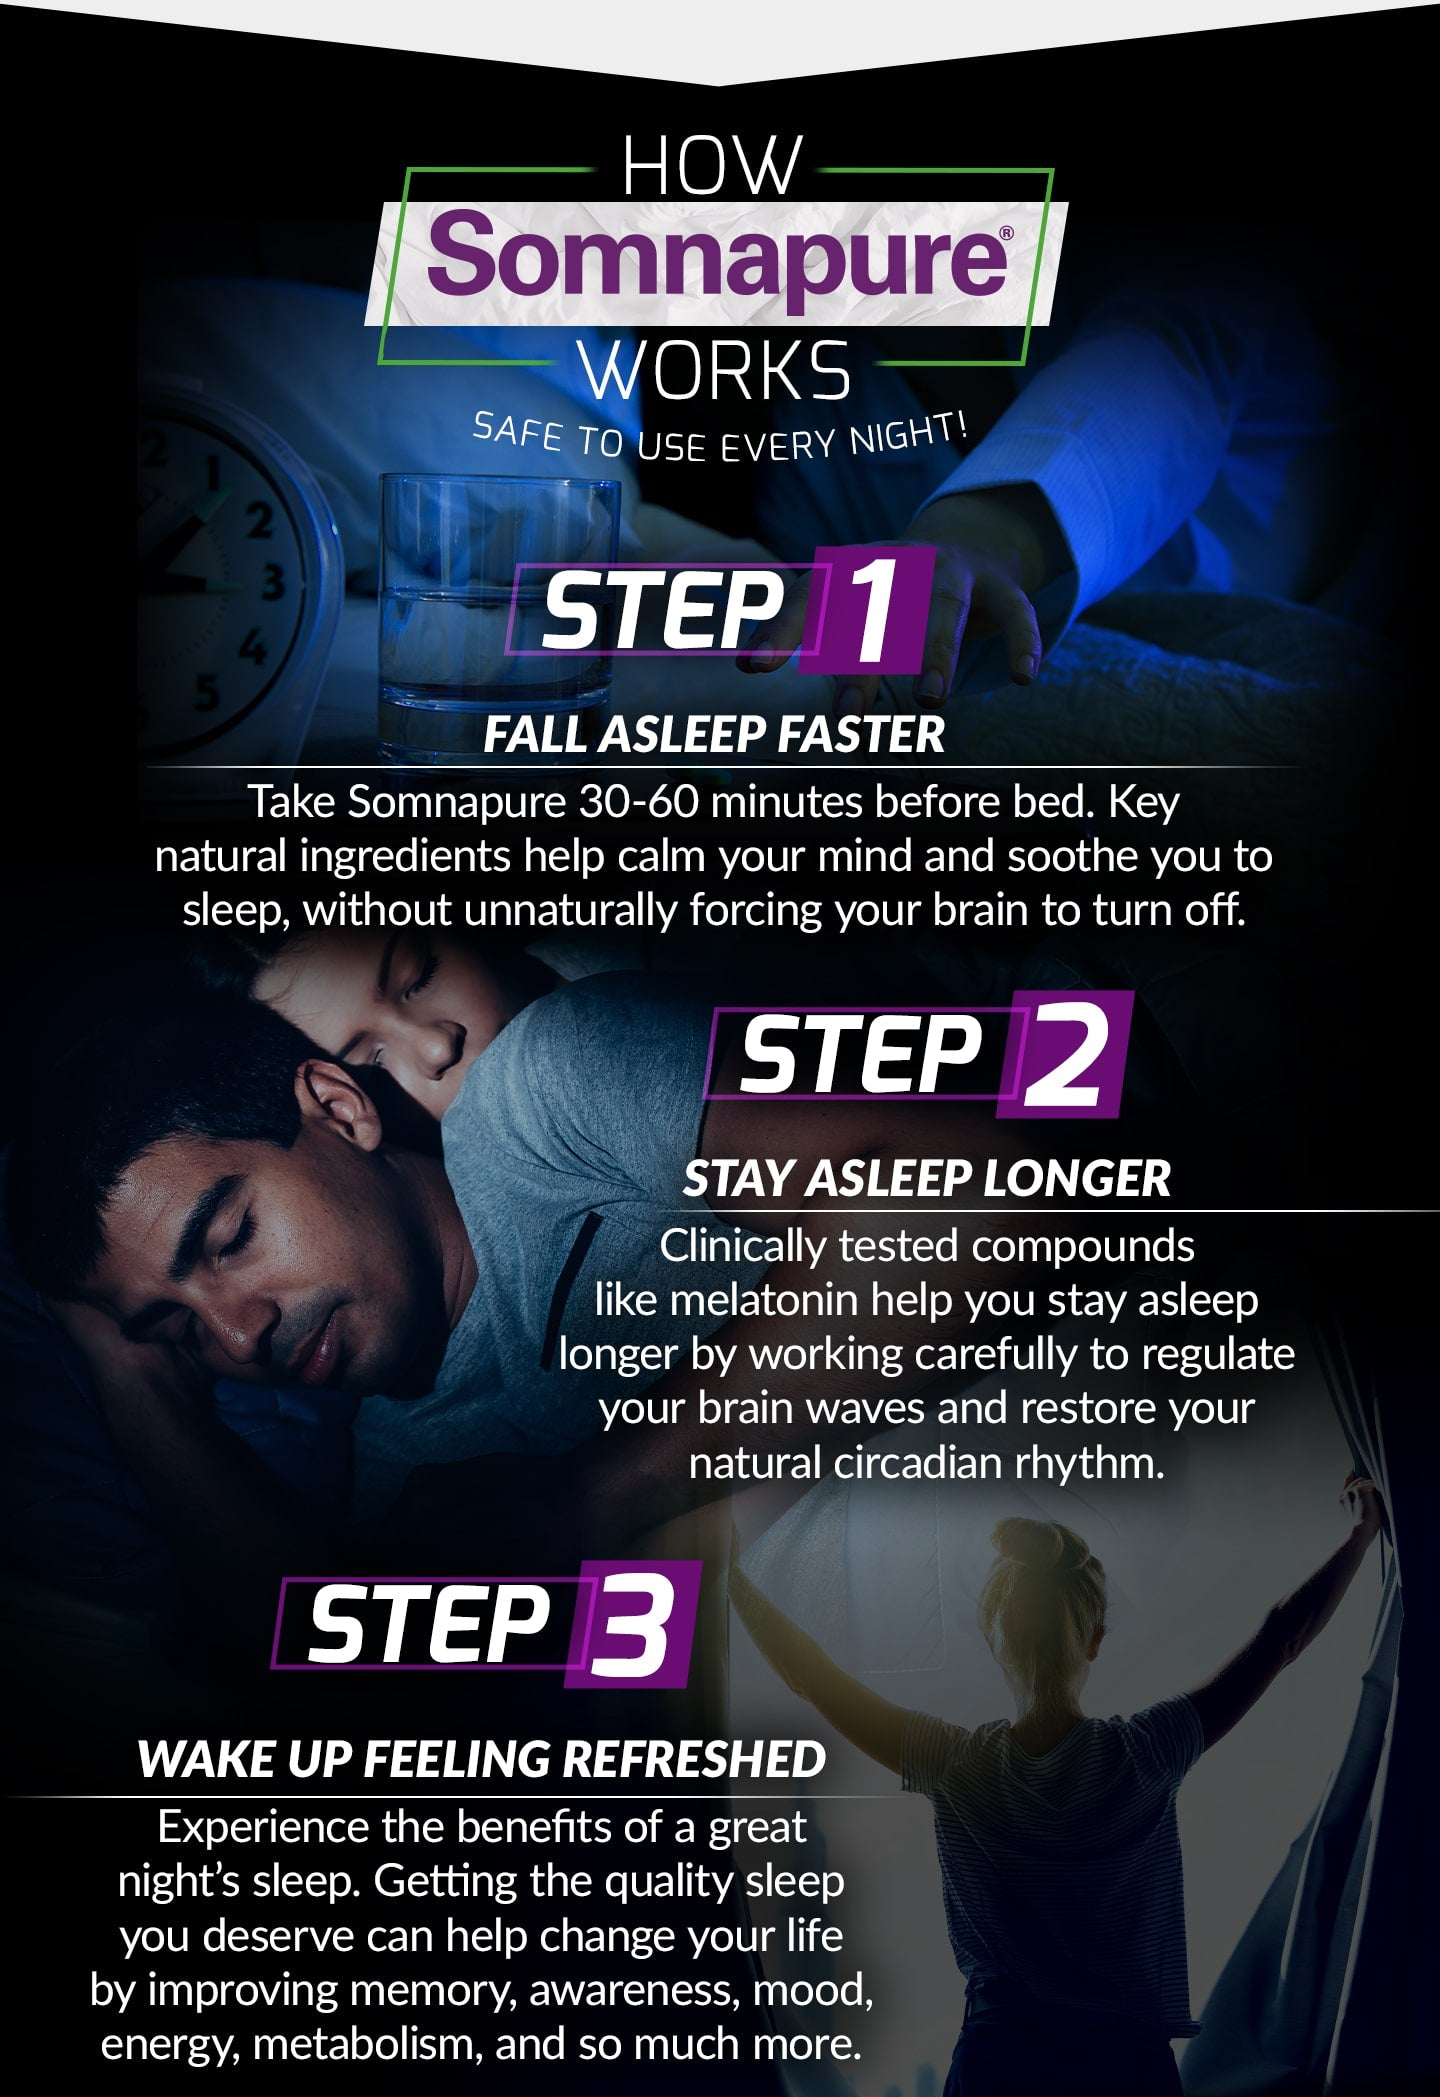 HOW SOMNAPURE WORKS. Safe to use every night! STEP 1: FALL ASLEEP FASTER. Take Somnapure 30-60 minutes before bed. Key natural ingredients help calm your mind and soothe you to sleep, without unnaturally forcing your brain to turn off. STEP 2: STAY ASLEEP LONGER. Clinically tested compounds like melatonin help you stay asleep longer by working carefully to regulate your brain waves and restore your natural circadian rhythm. STEP 3: WAKE UP FEELING REFRESHED. Experience the benefits of a great night's sleep. Getting the quality sleep you deserve can help change your life by improving memory, awareness, mood, energy, metabolism, and so much more.